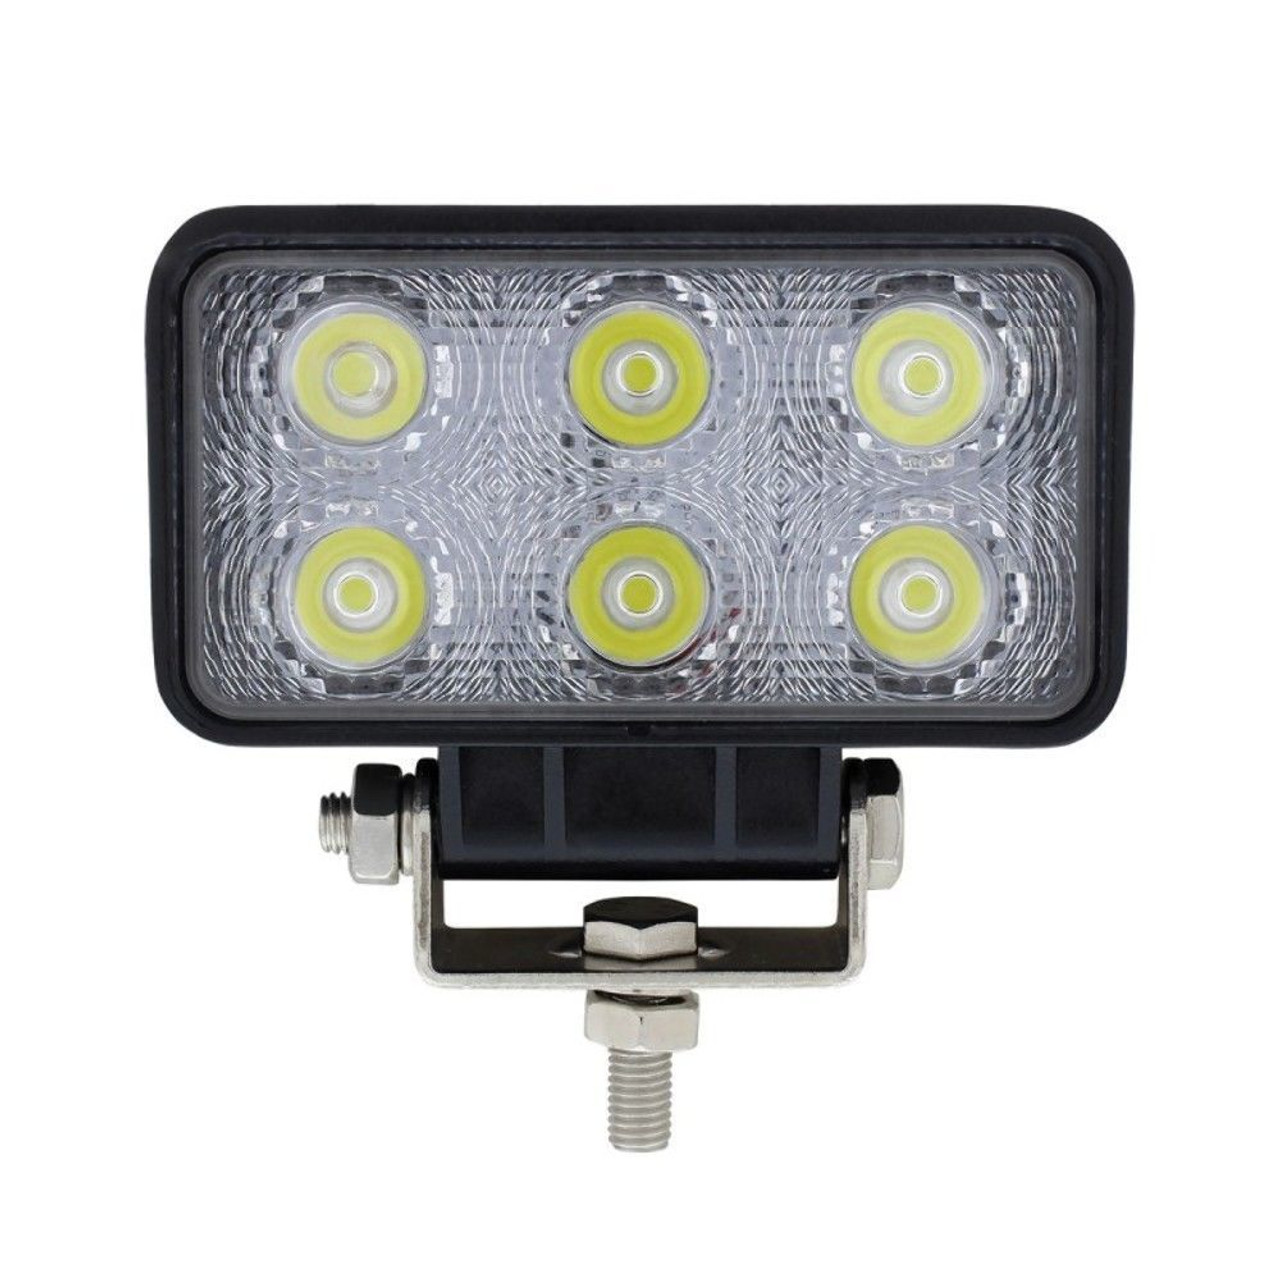 6 High Power Led Rectangular Driving/Working Light